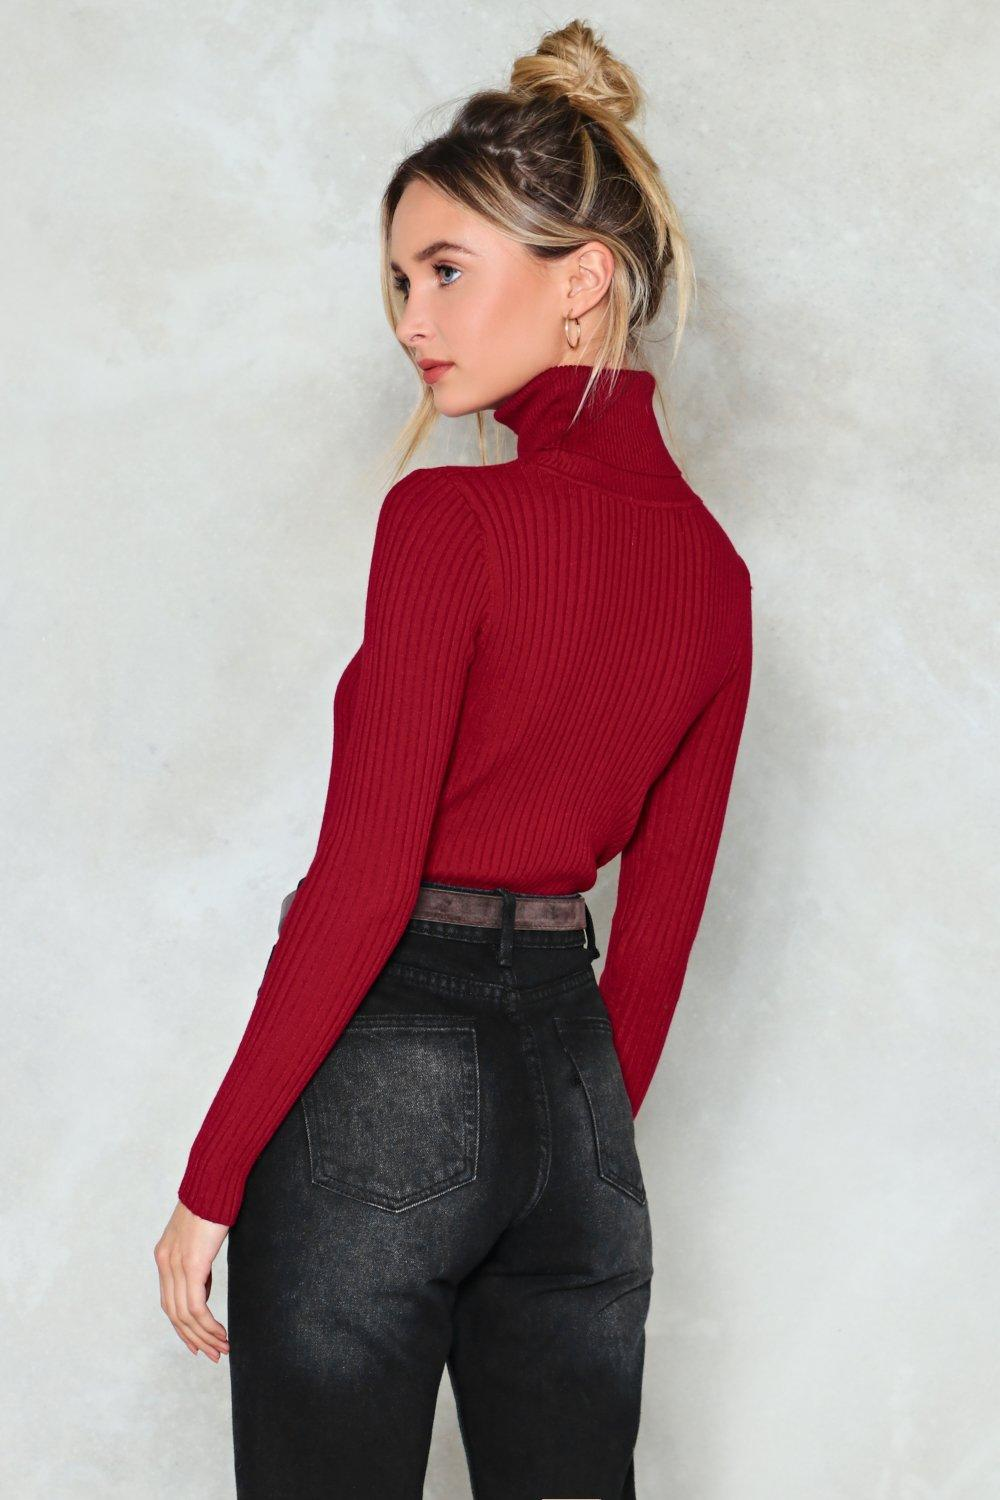 c7f17a0e2e39 My Neck of the Woods Turtleneck Sweater | Shop Clothes at Nasty Gal!